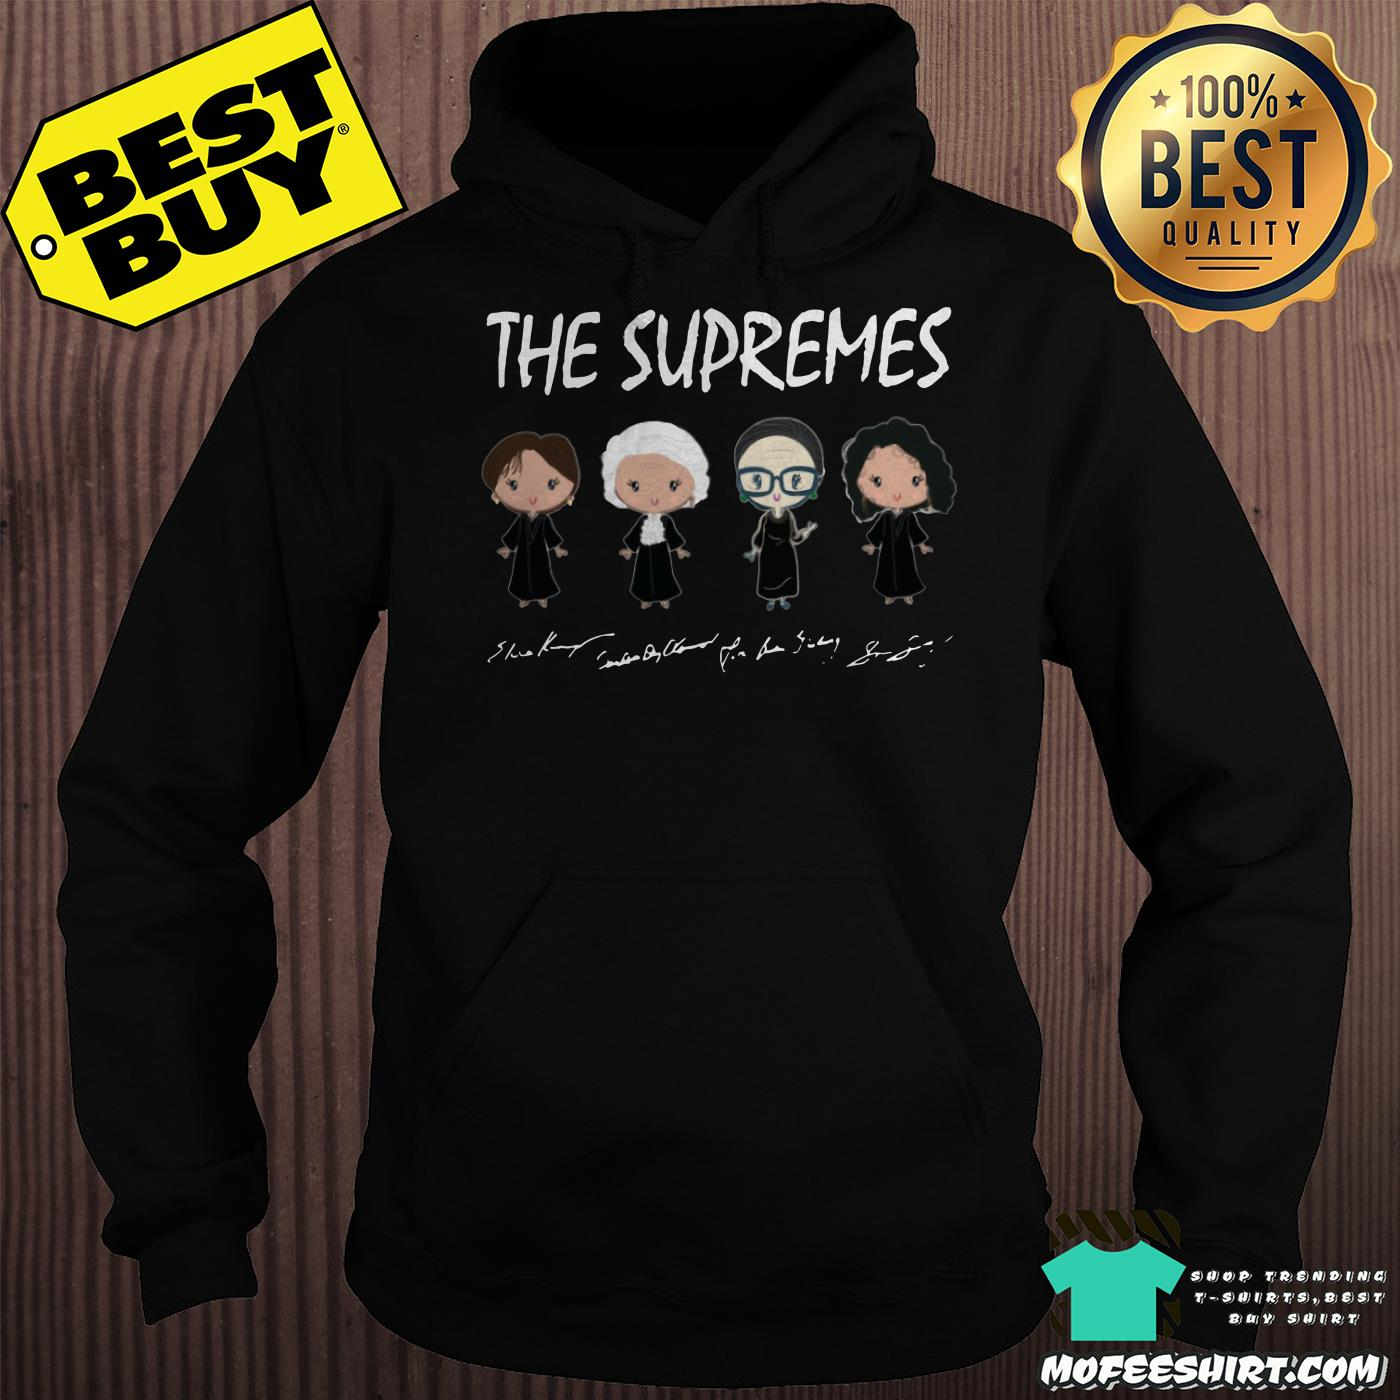 the supremes ruth bader ginsburg signatures hoodie - The supremes Ruth Bader Ginsburg signatures shirt